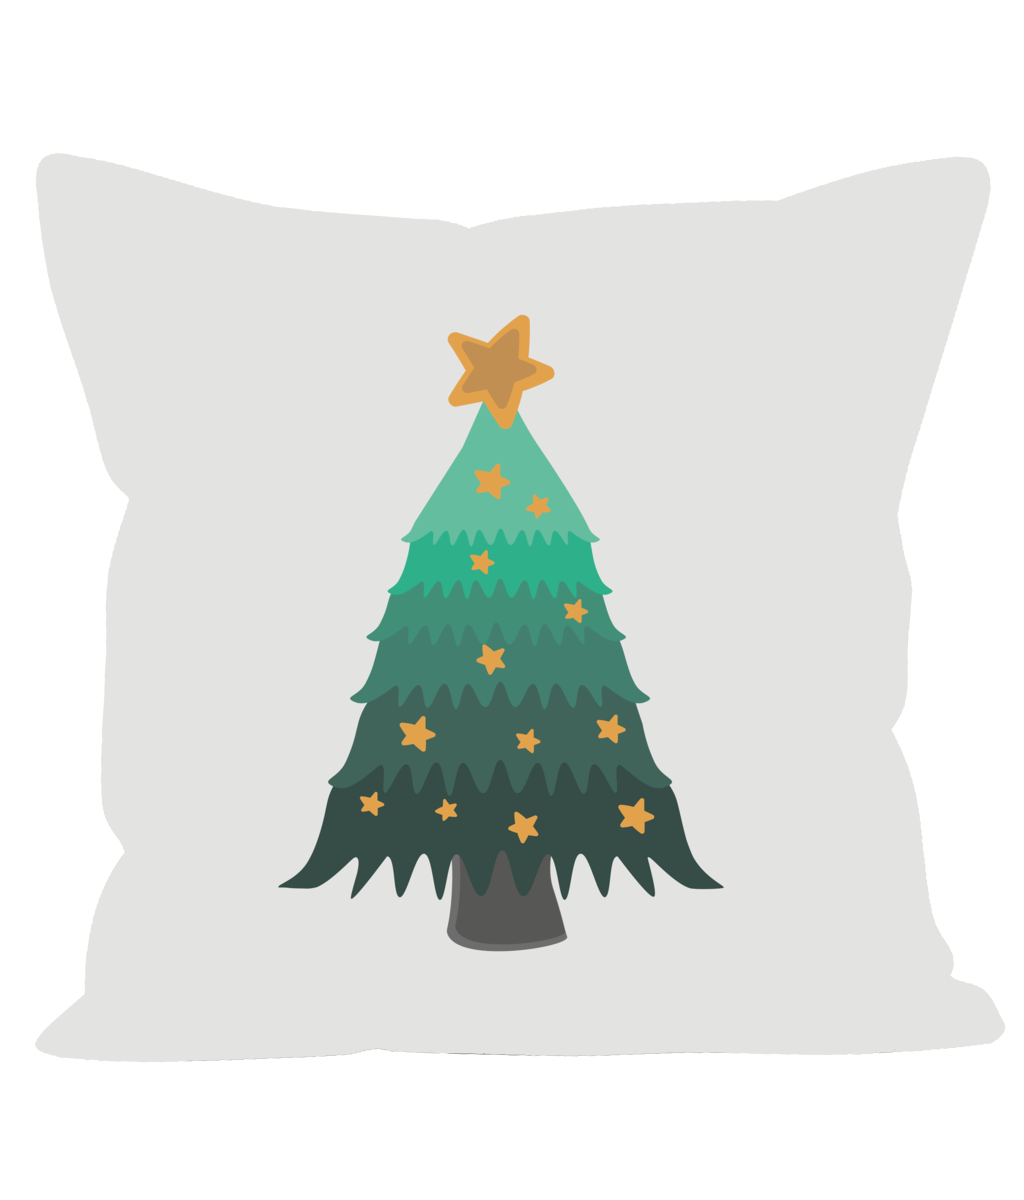 Sofa Cushions Christmas Tree